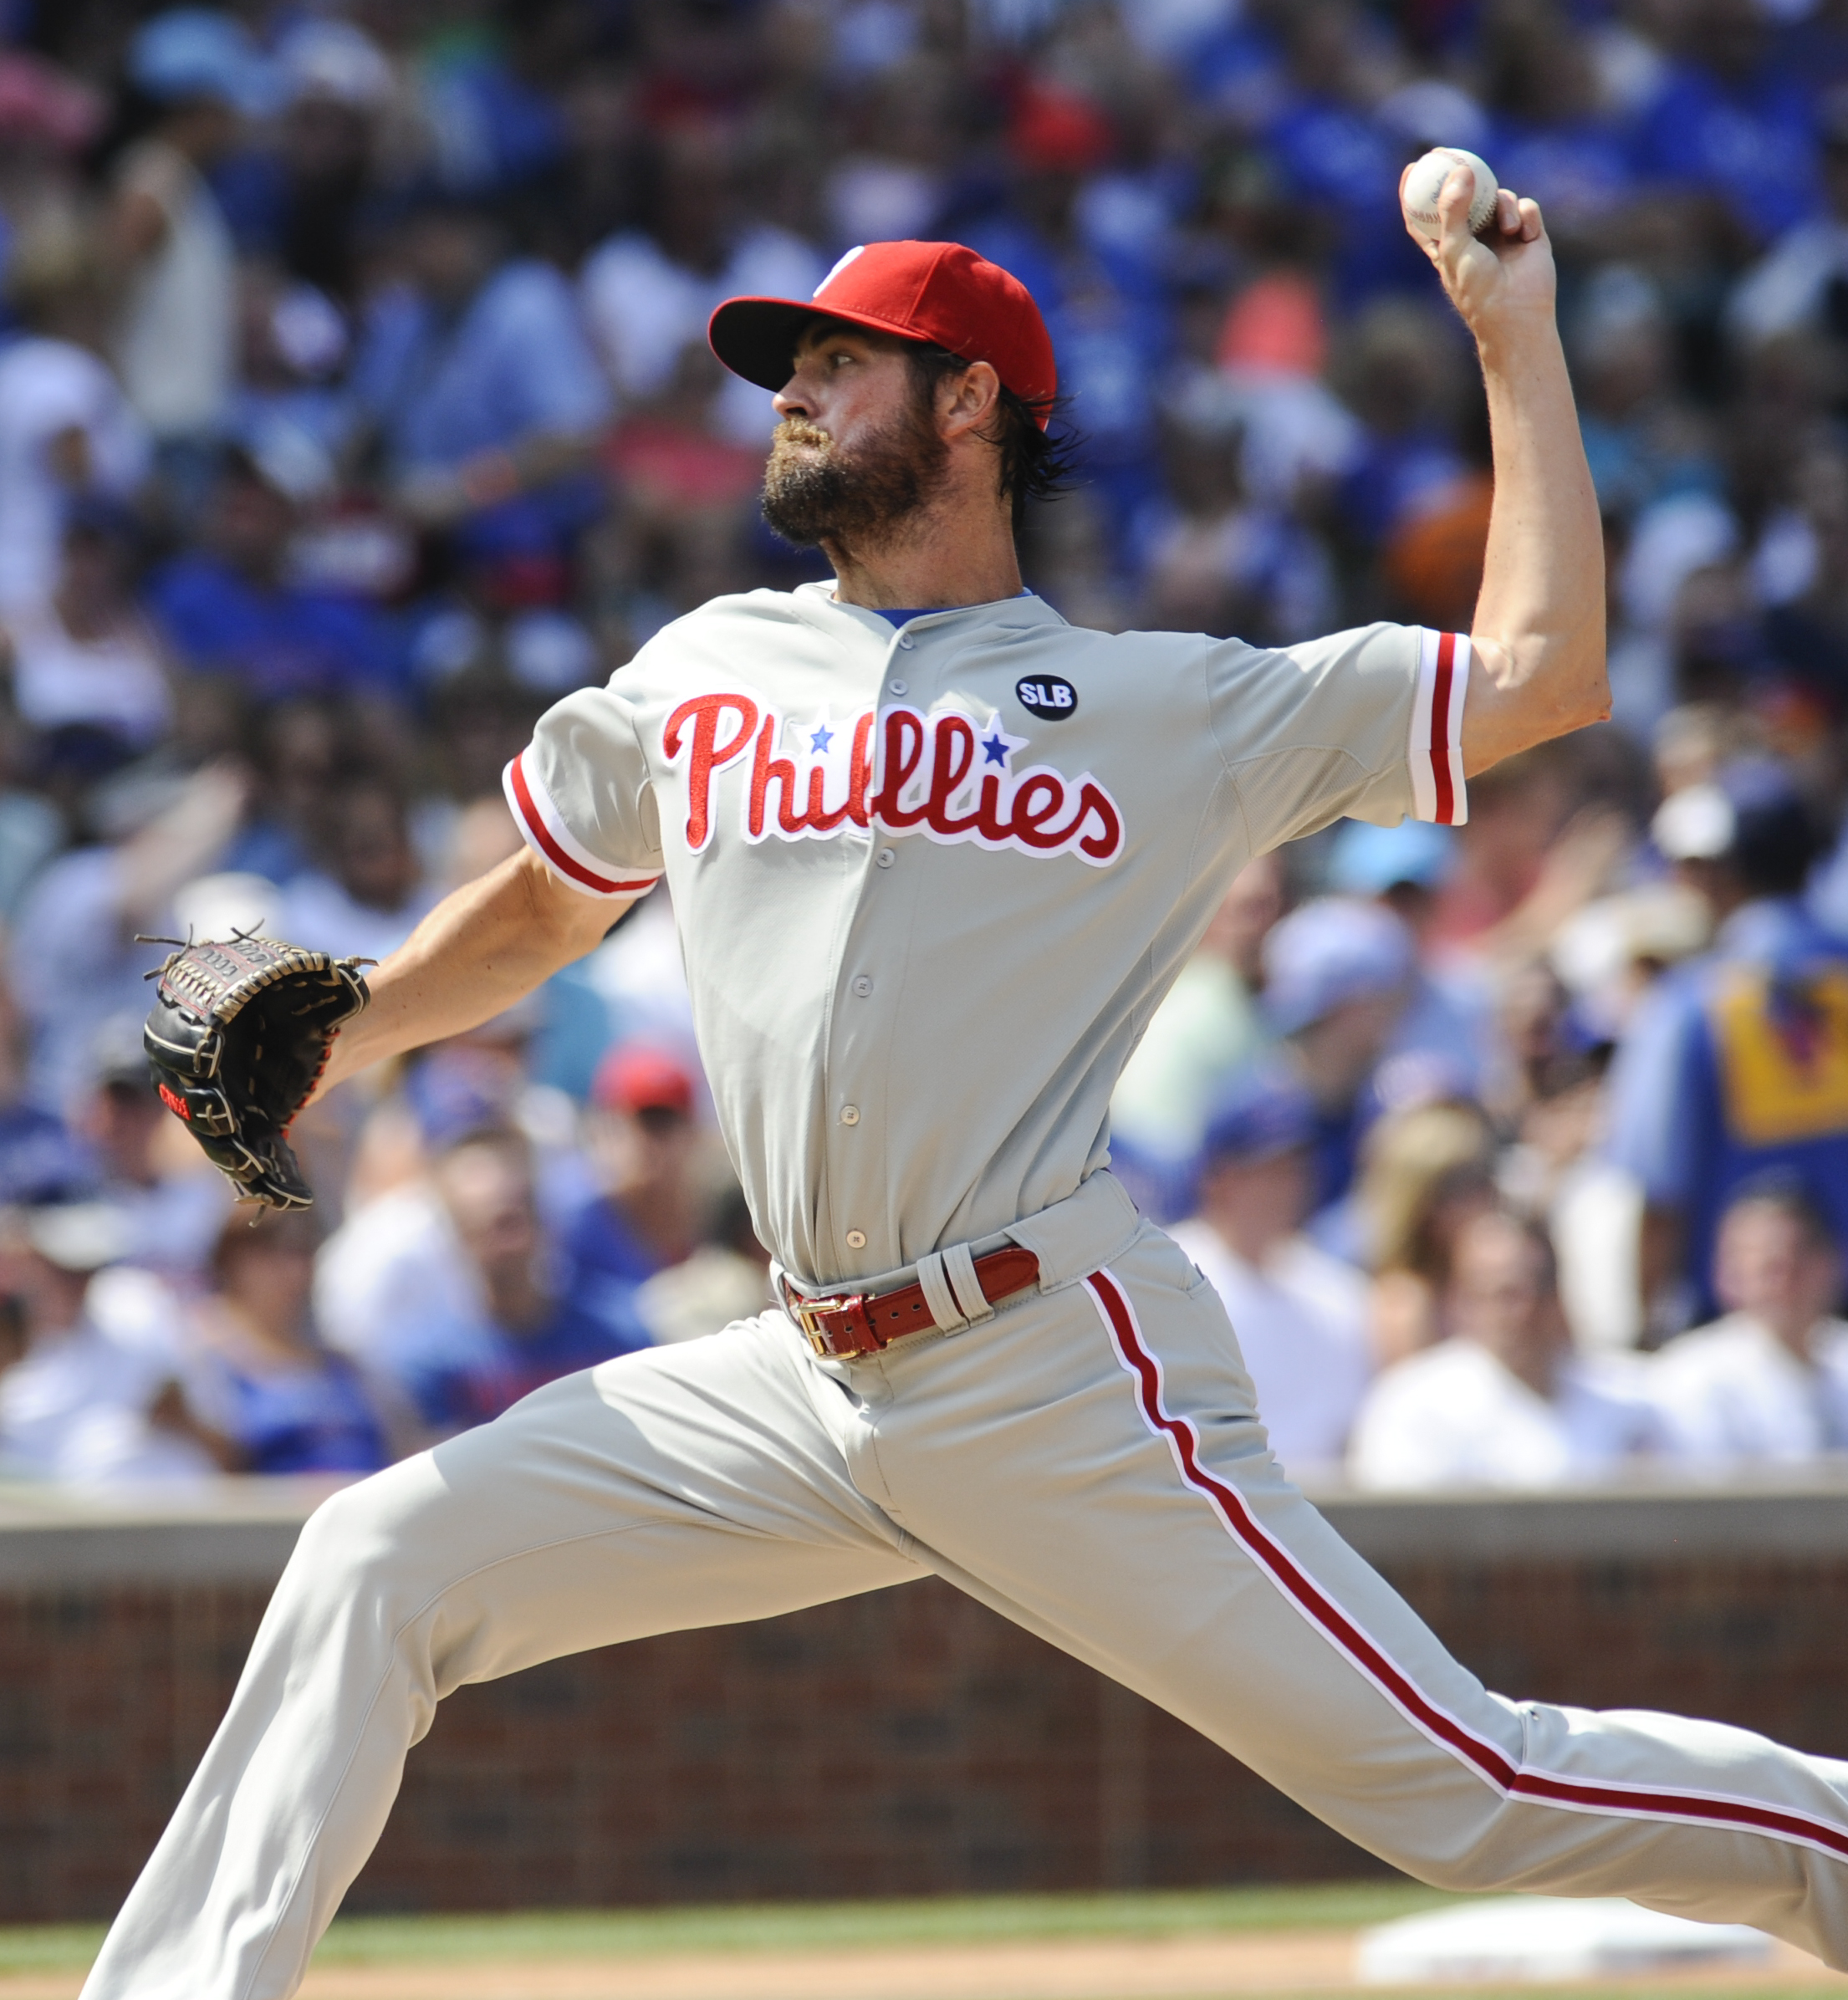 Philadelphia Phillies' starting pitcher Cole Hamels delivers during the first inning of baseball game against the Chicago Cubs in Chicago on Saturday, July 25, 2015. (AP Photo/Matt Marton)